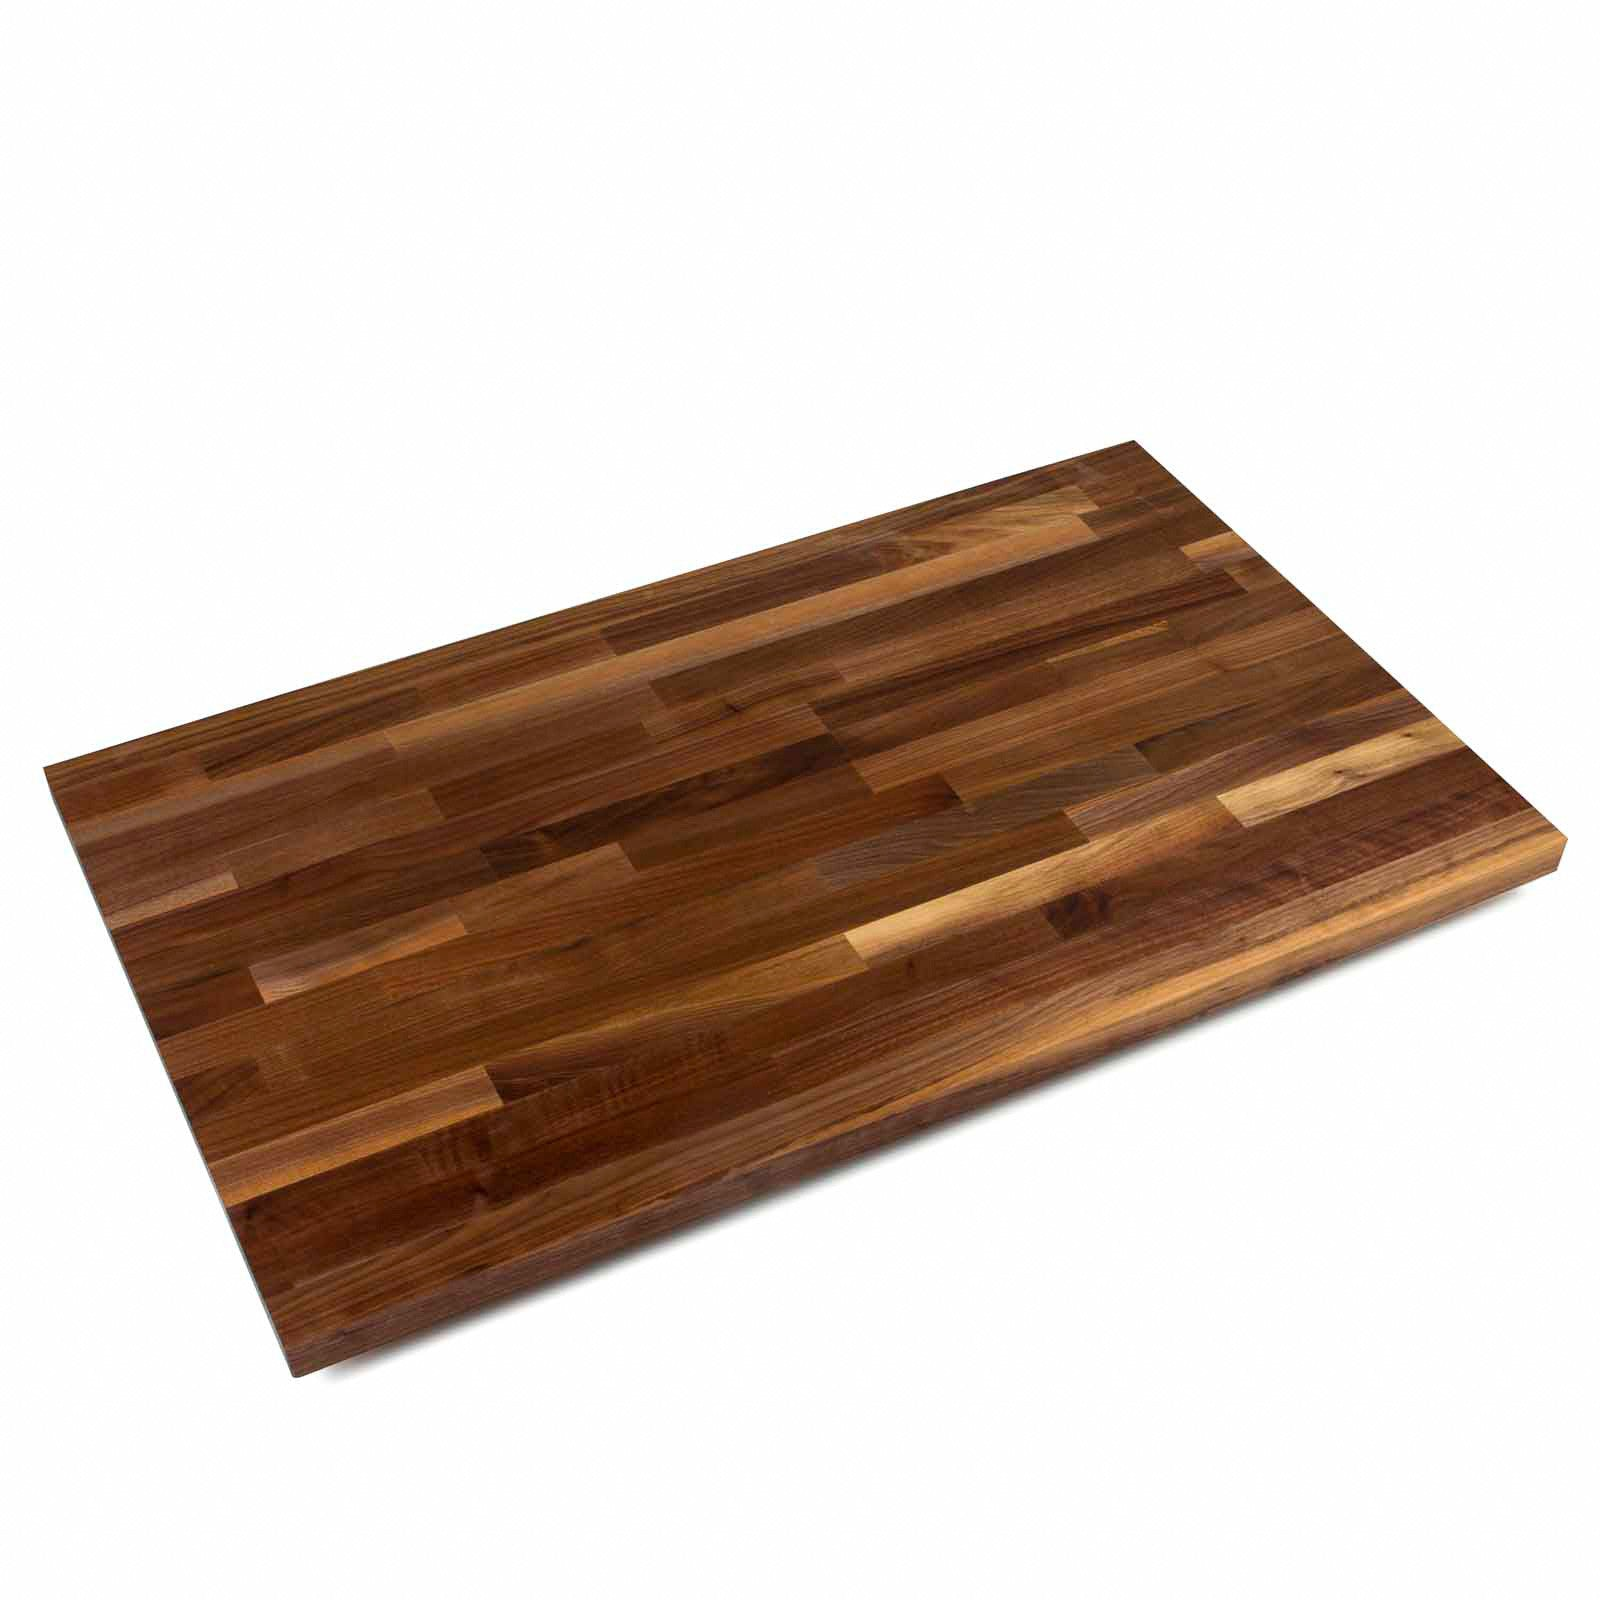 "John Boos 1 1/2"" Thick Blended Walnut Butcher Block Countertop - 42"" Wide"